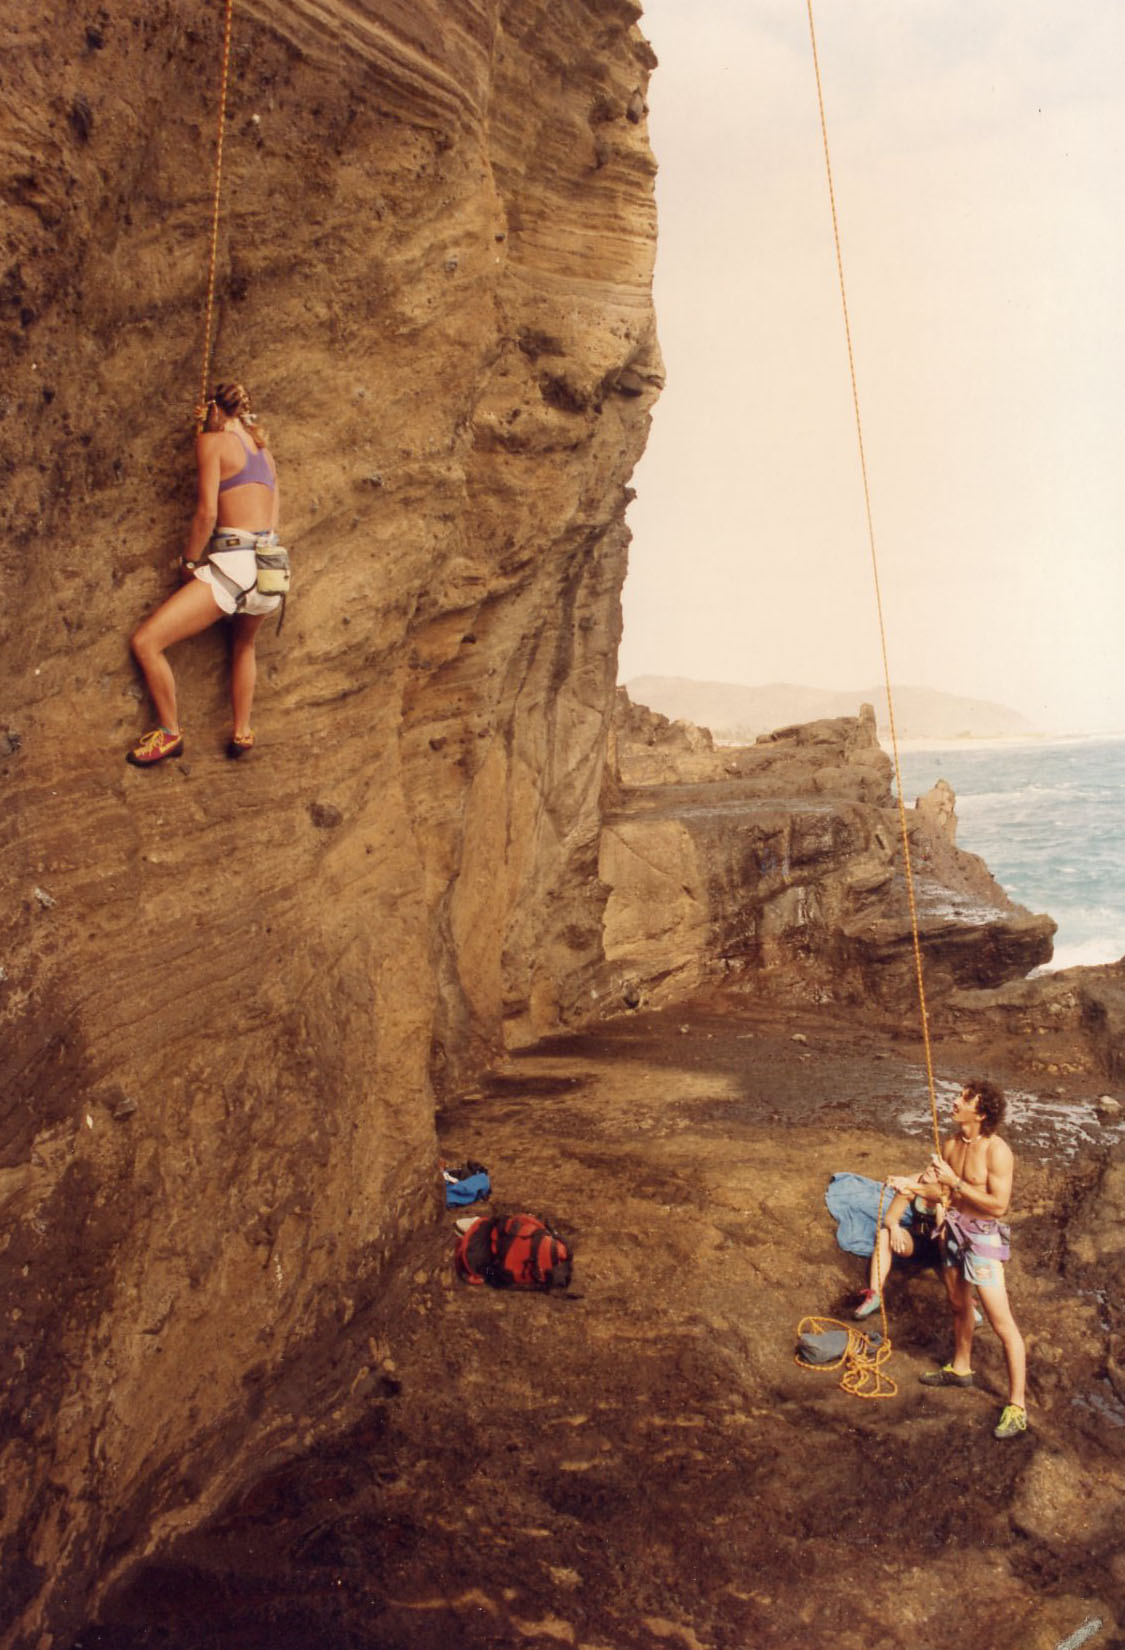 """The Blowhole, 1991. """"The Blowhole site was great fun until a wave doused everyone except the climber on the wall."""""""